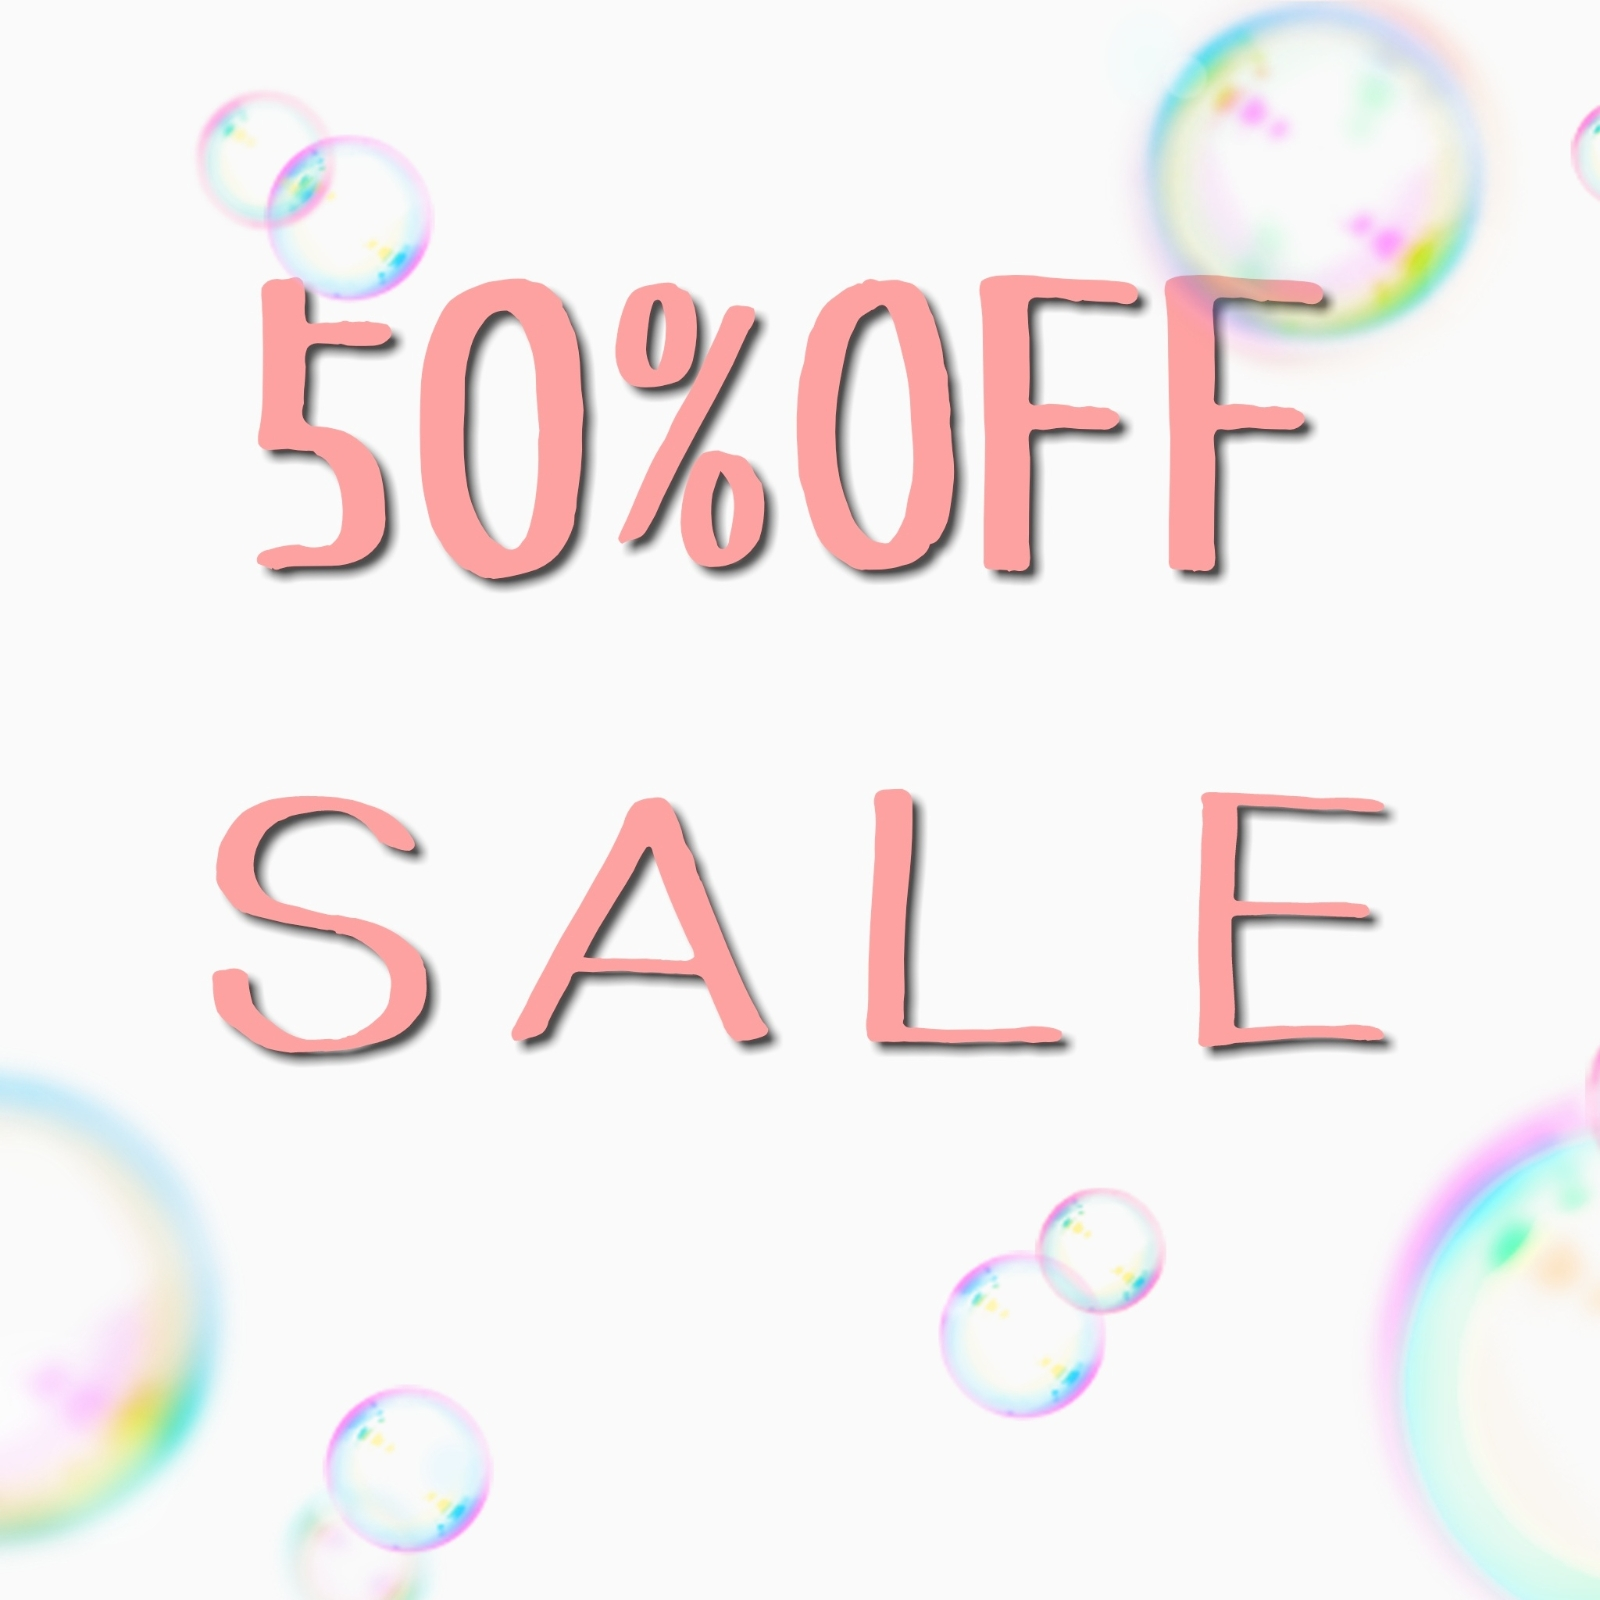 50%offsale*.